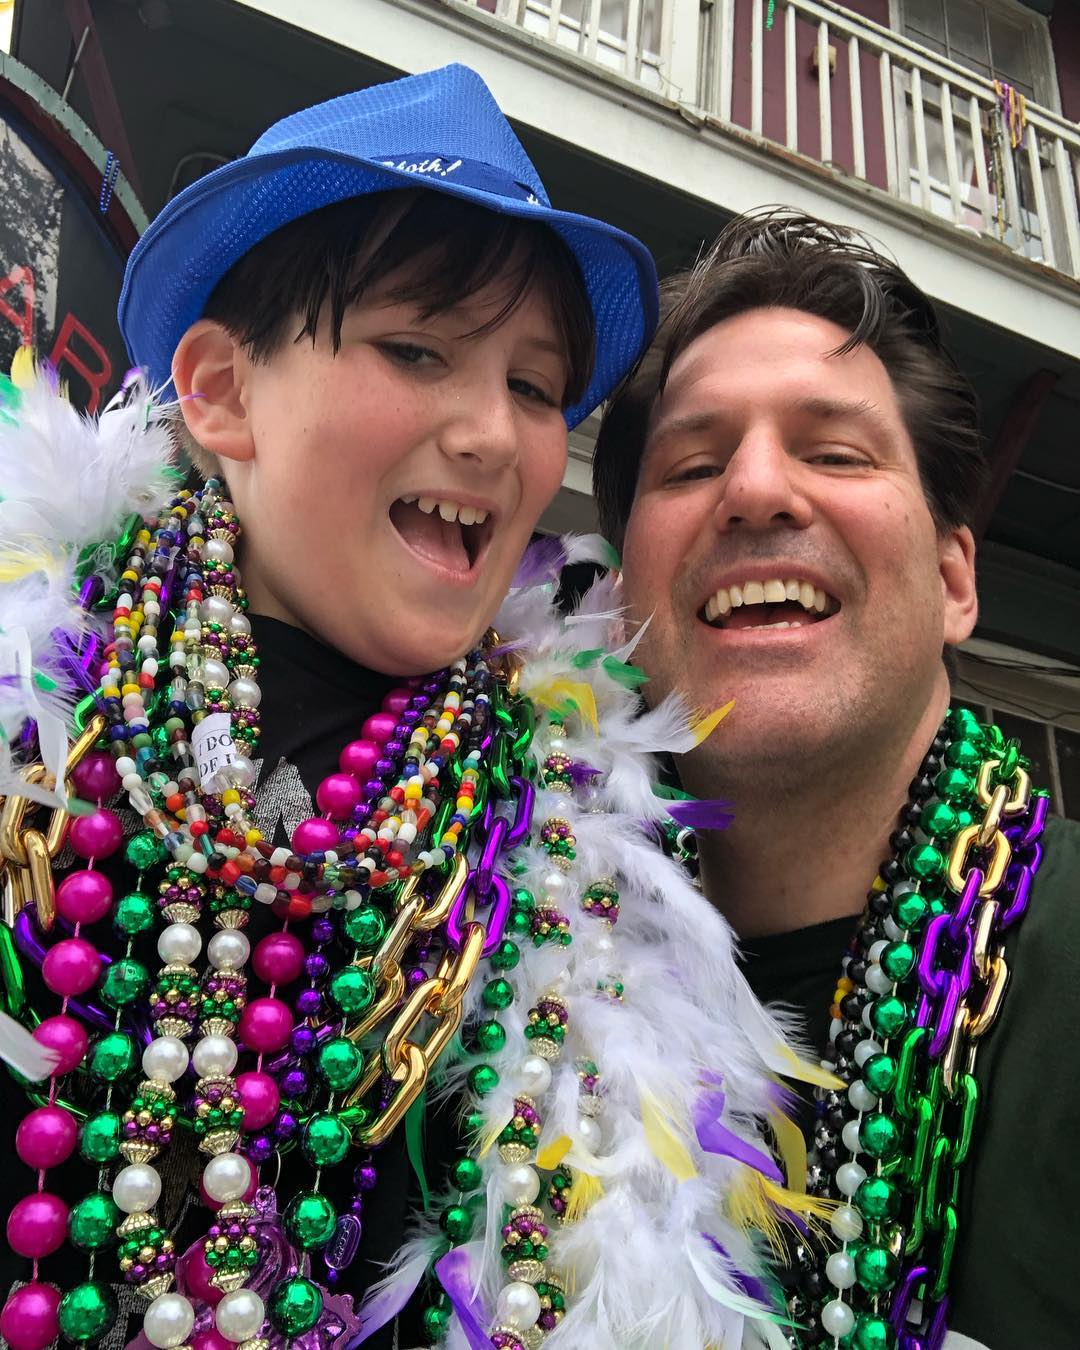 Happy Mardi Gras to you and your family! - Chef Paul Gerard